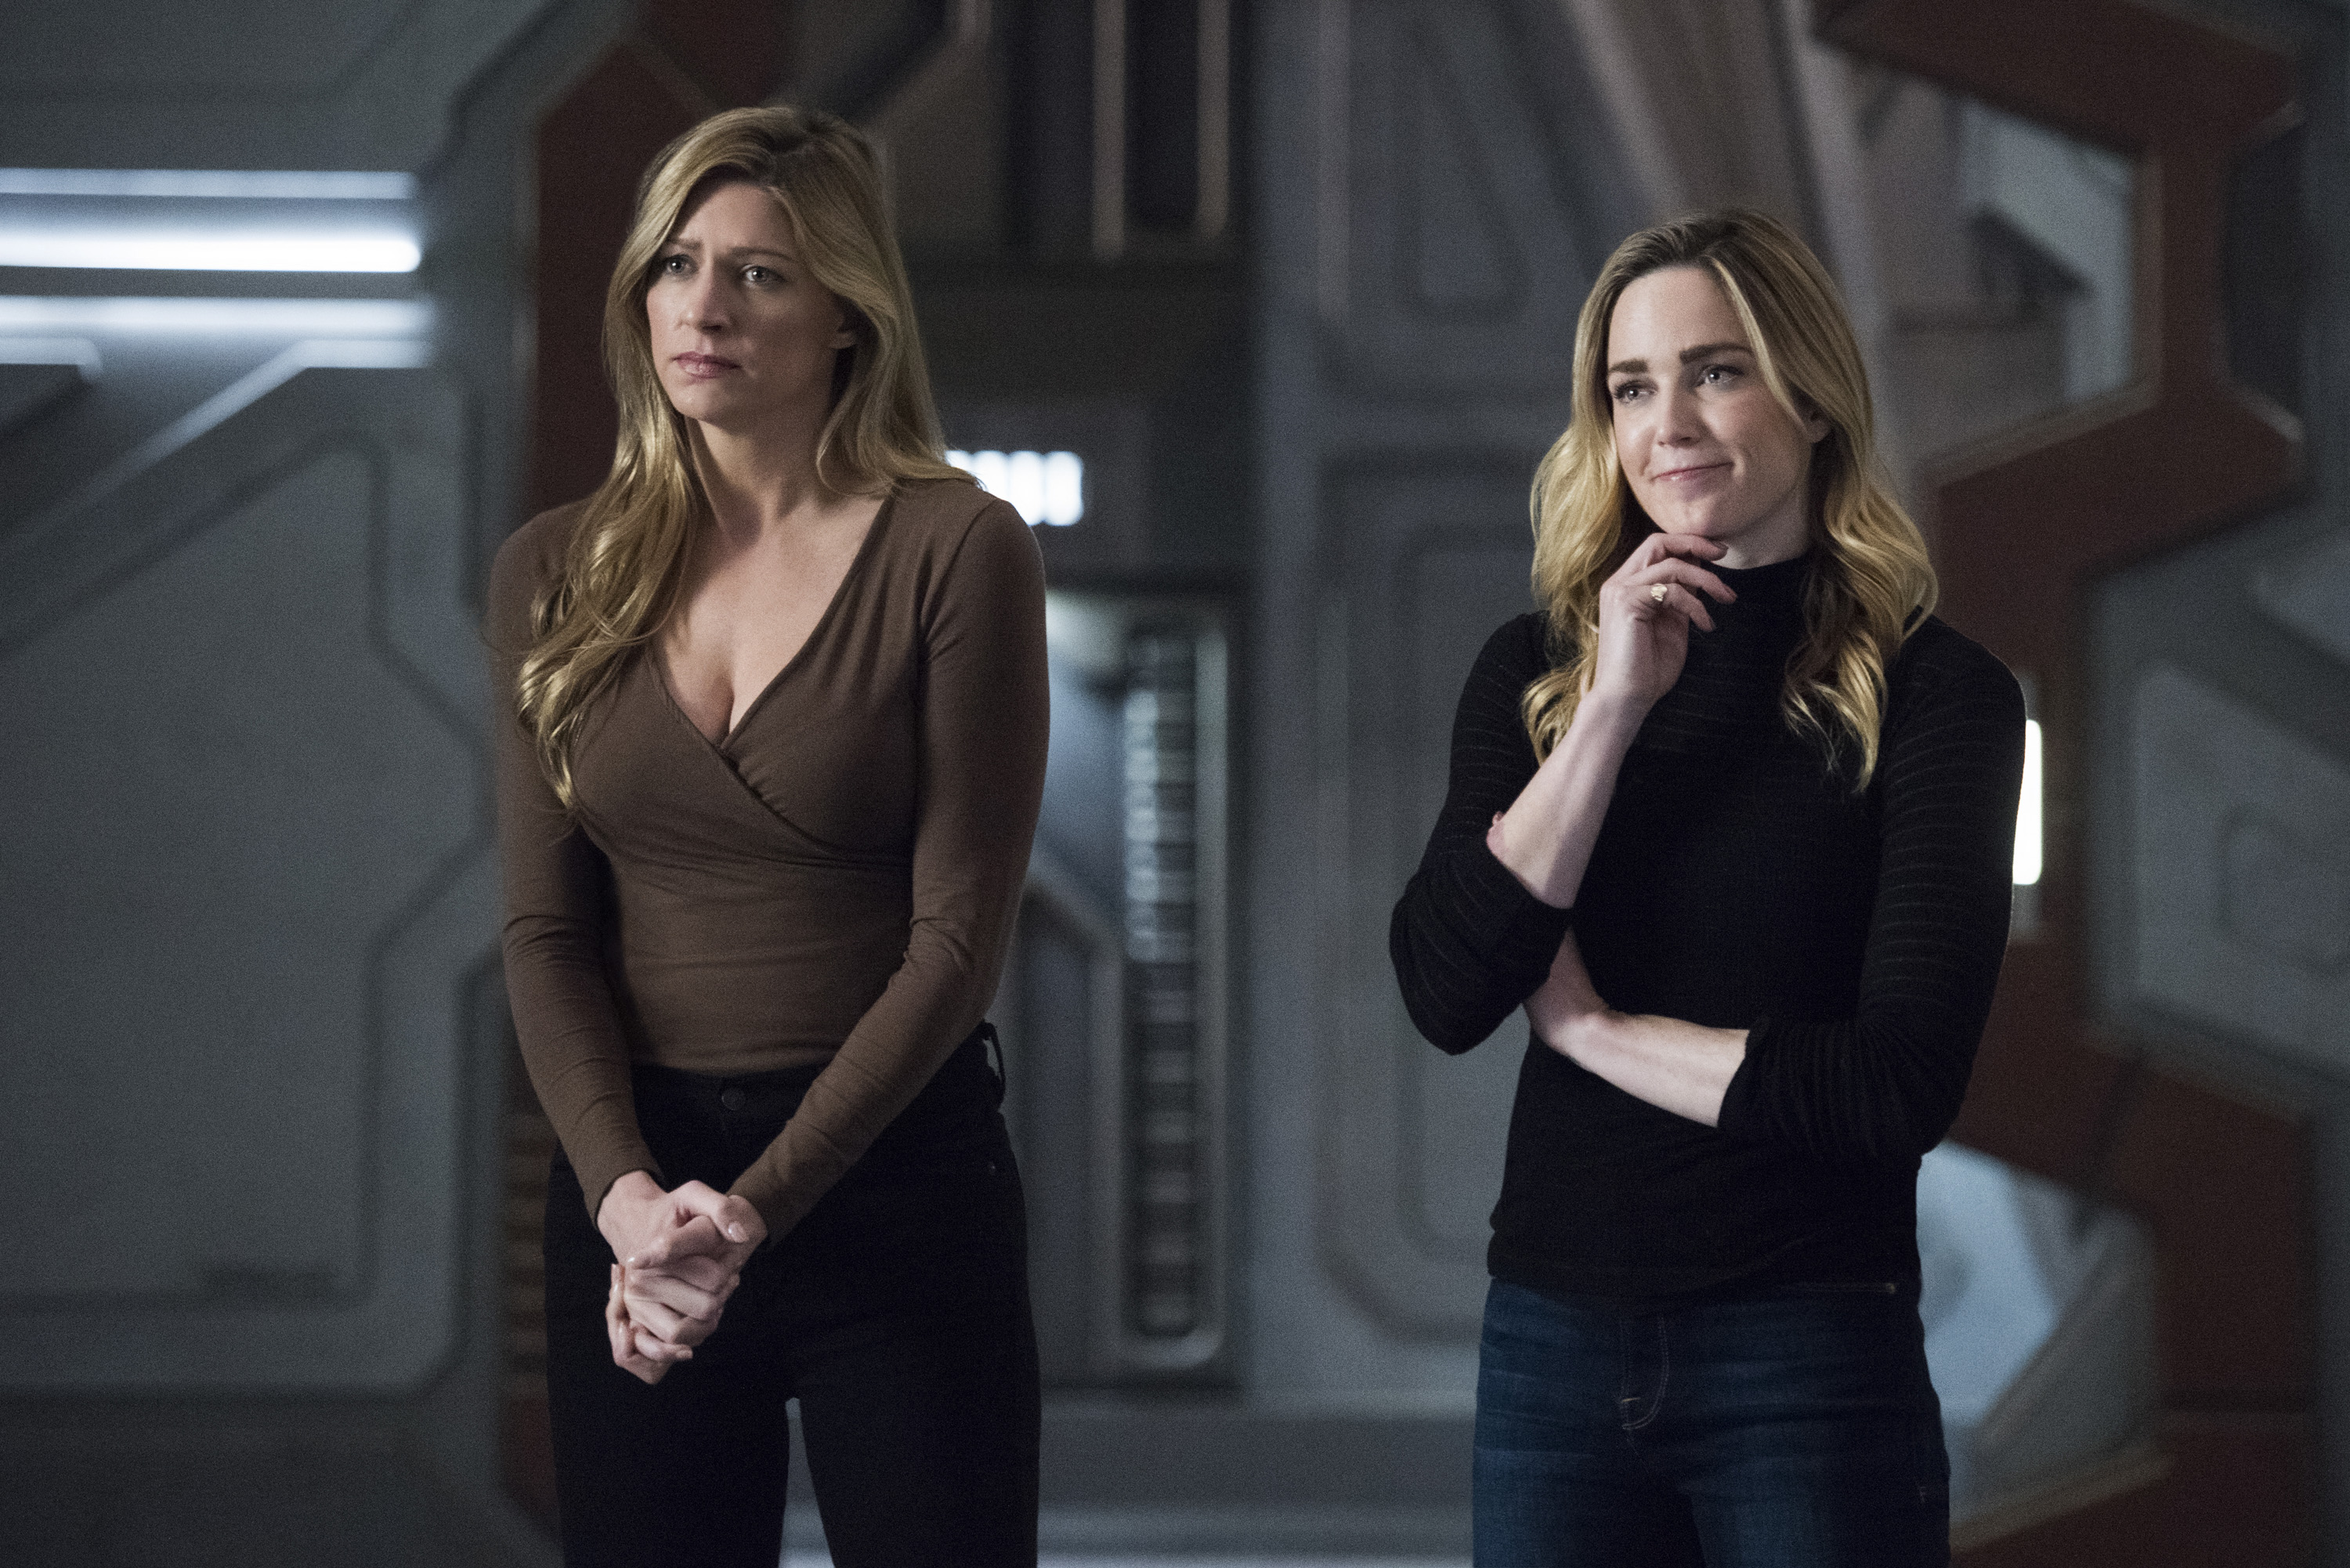 legends-of-tomorrow-episode-4-15-terms-of-service-9